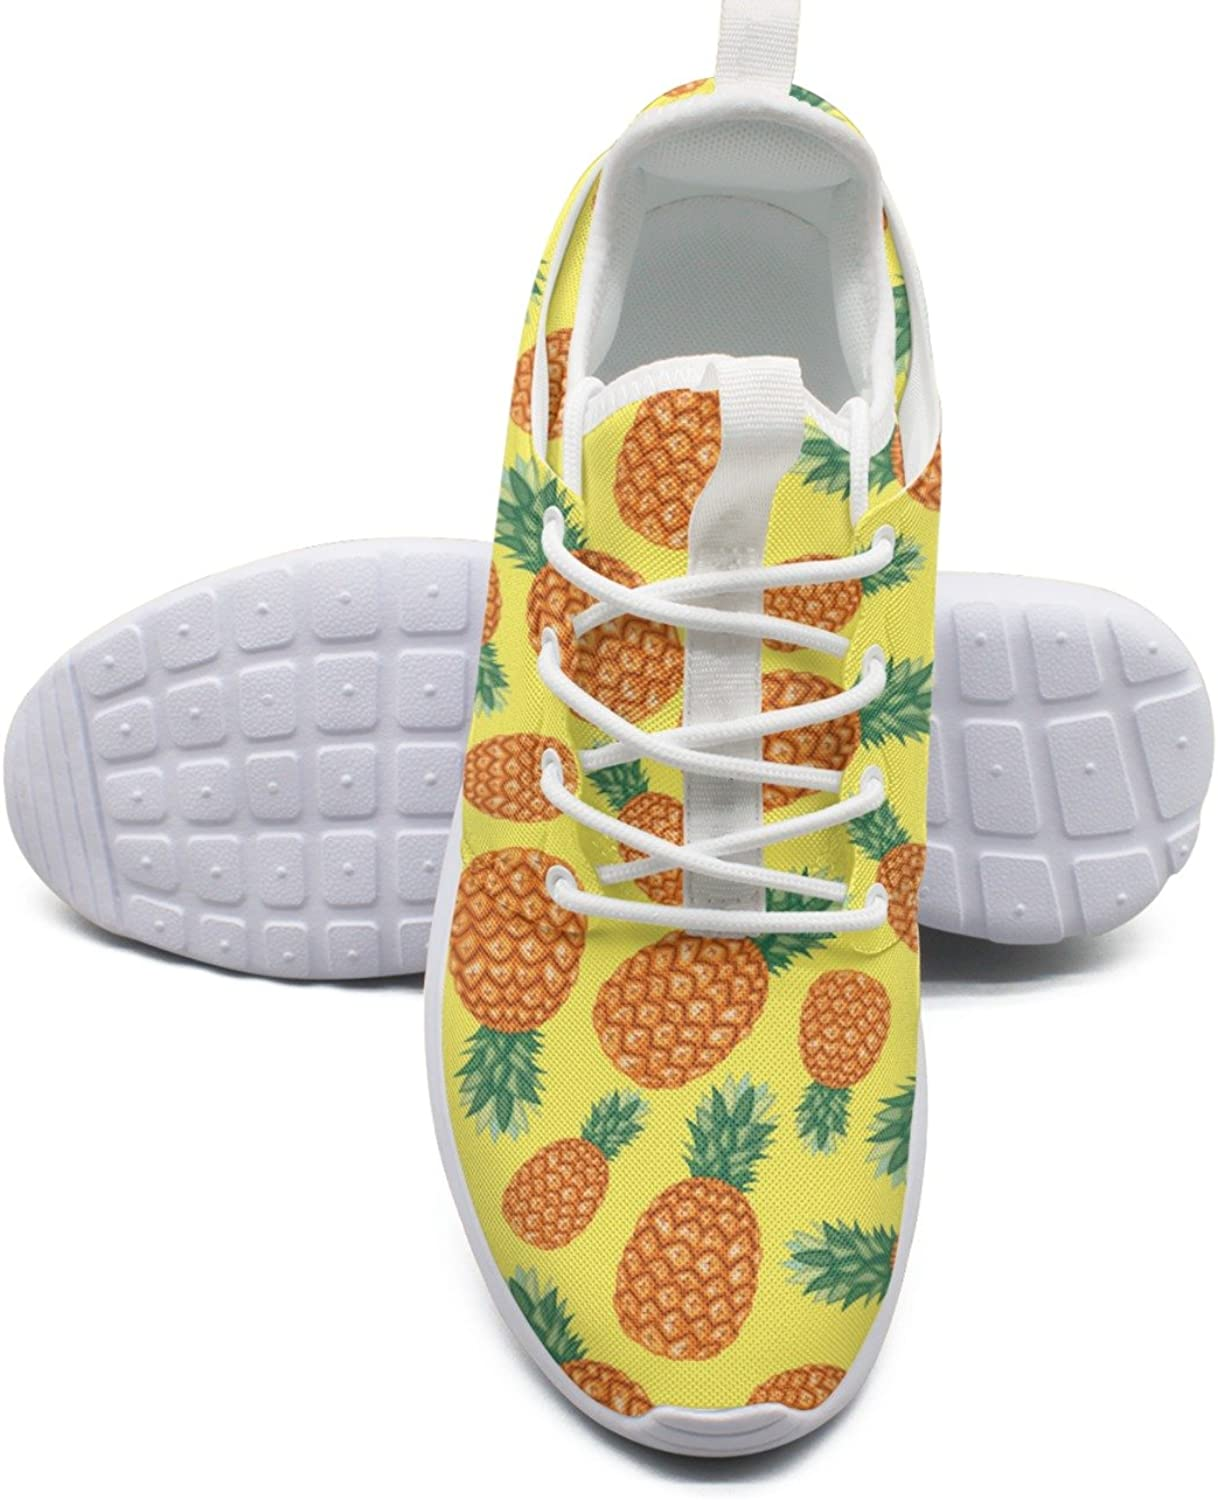 Ananas Pineapple Tropical Fruit Pattern Running Basketball shoes Women size 8